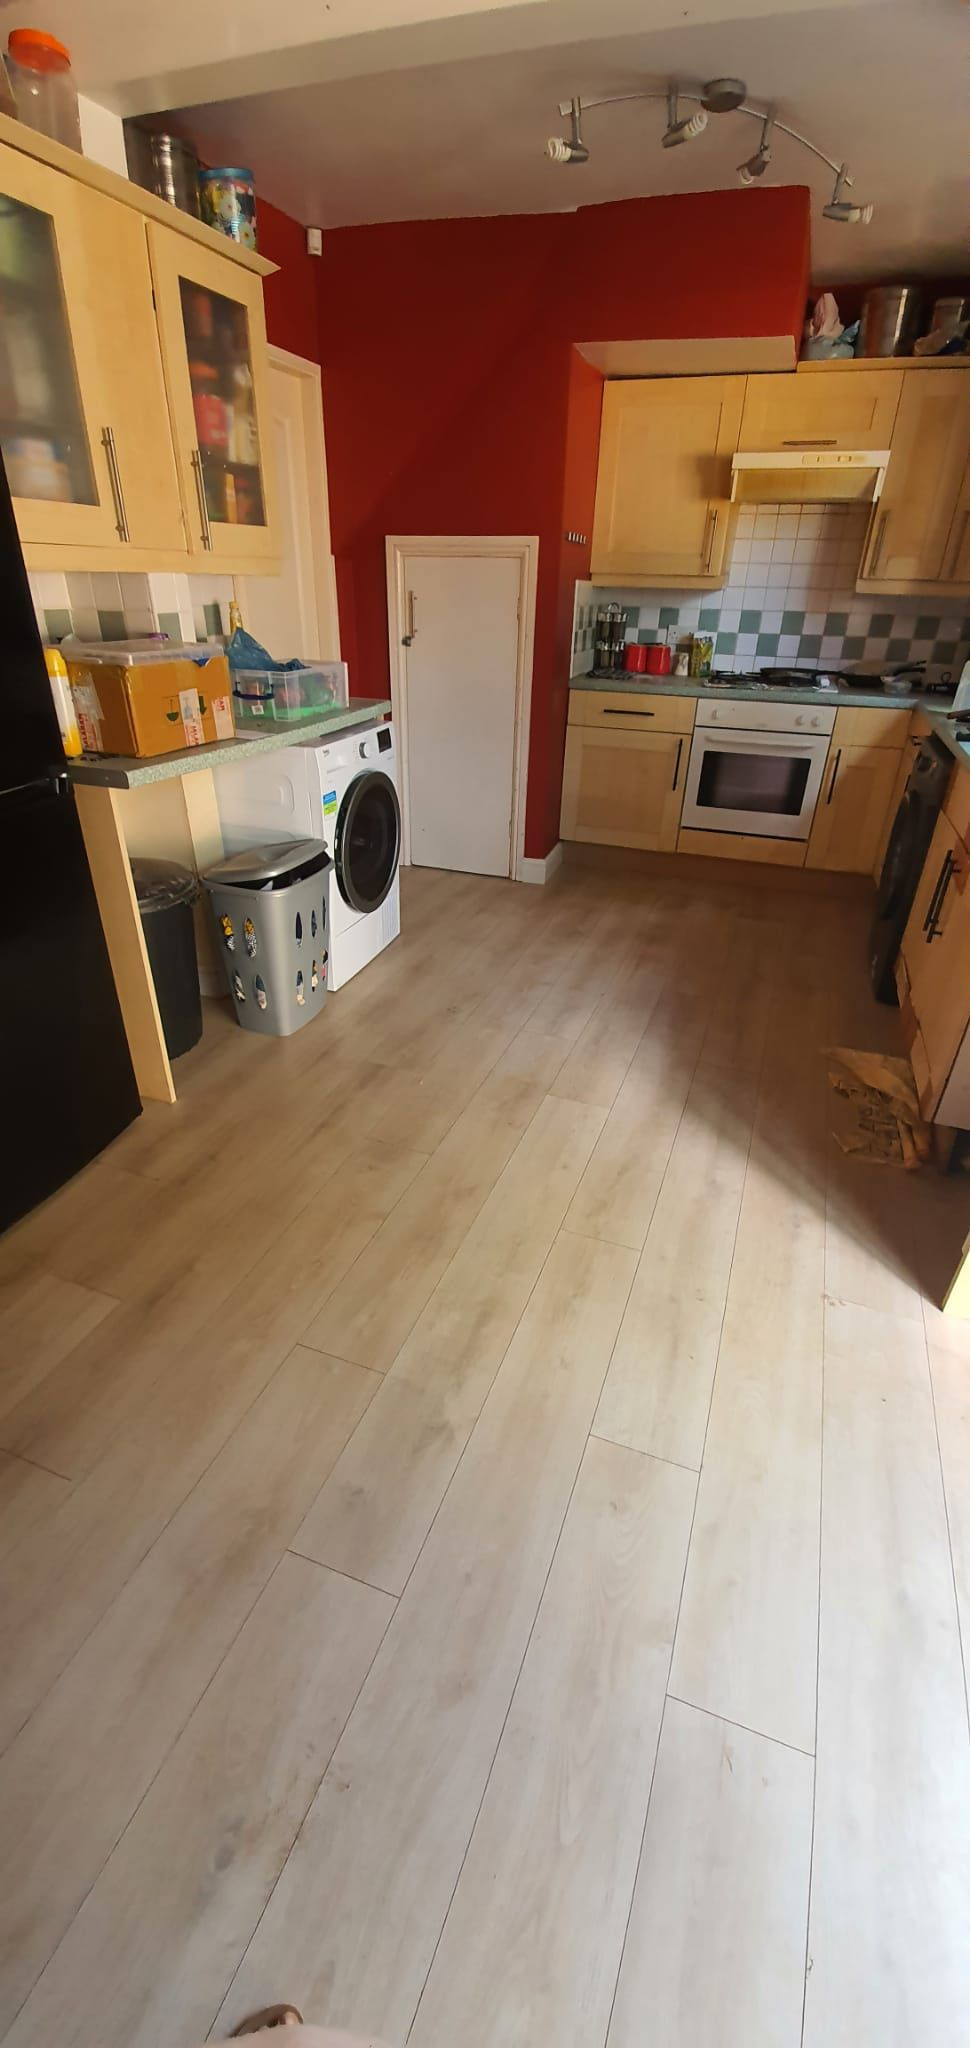 3 bedroom town house For Sale in Leicester - Photograph 5.